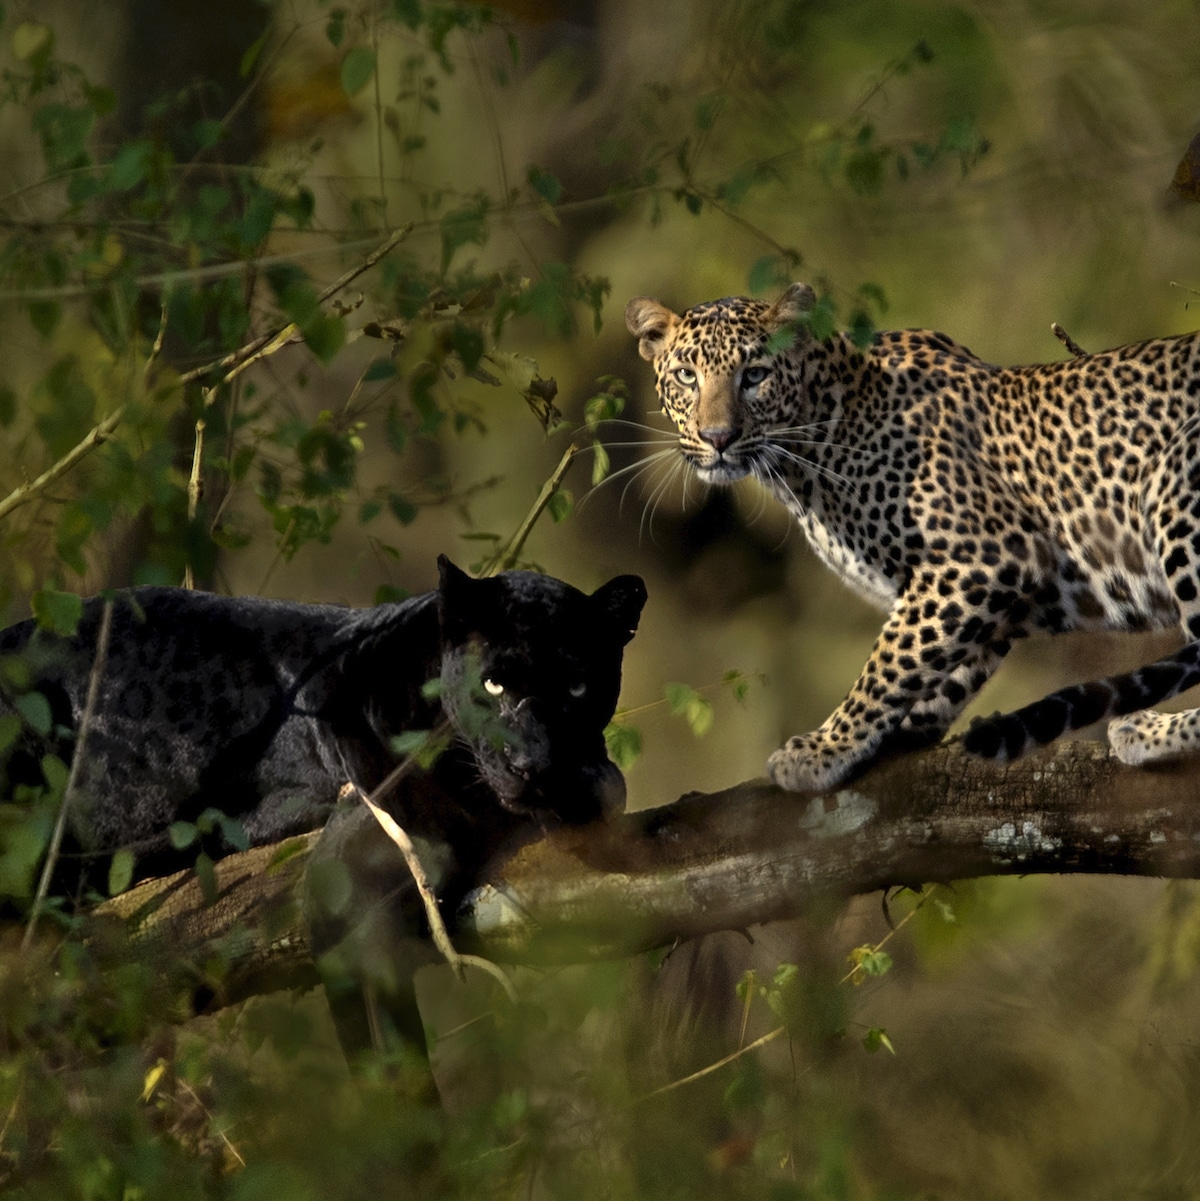 Saaya and Cleopatra at the Kabini Forest Reserve in Karnataka, India